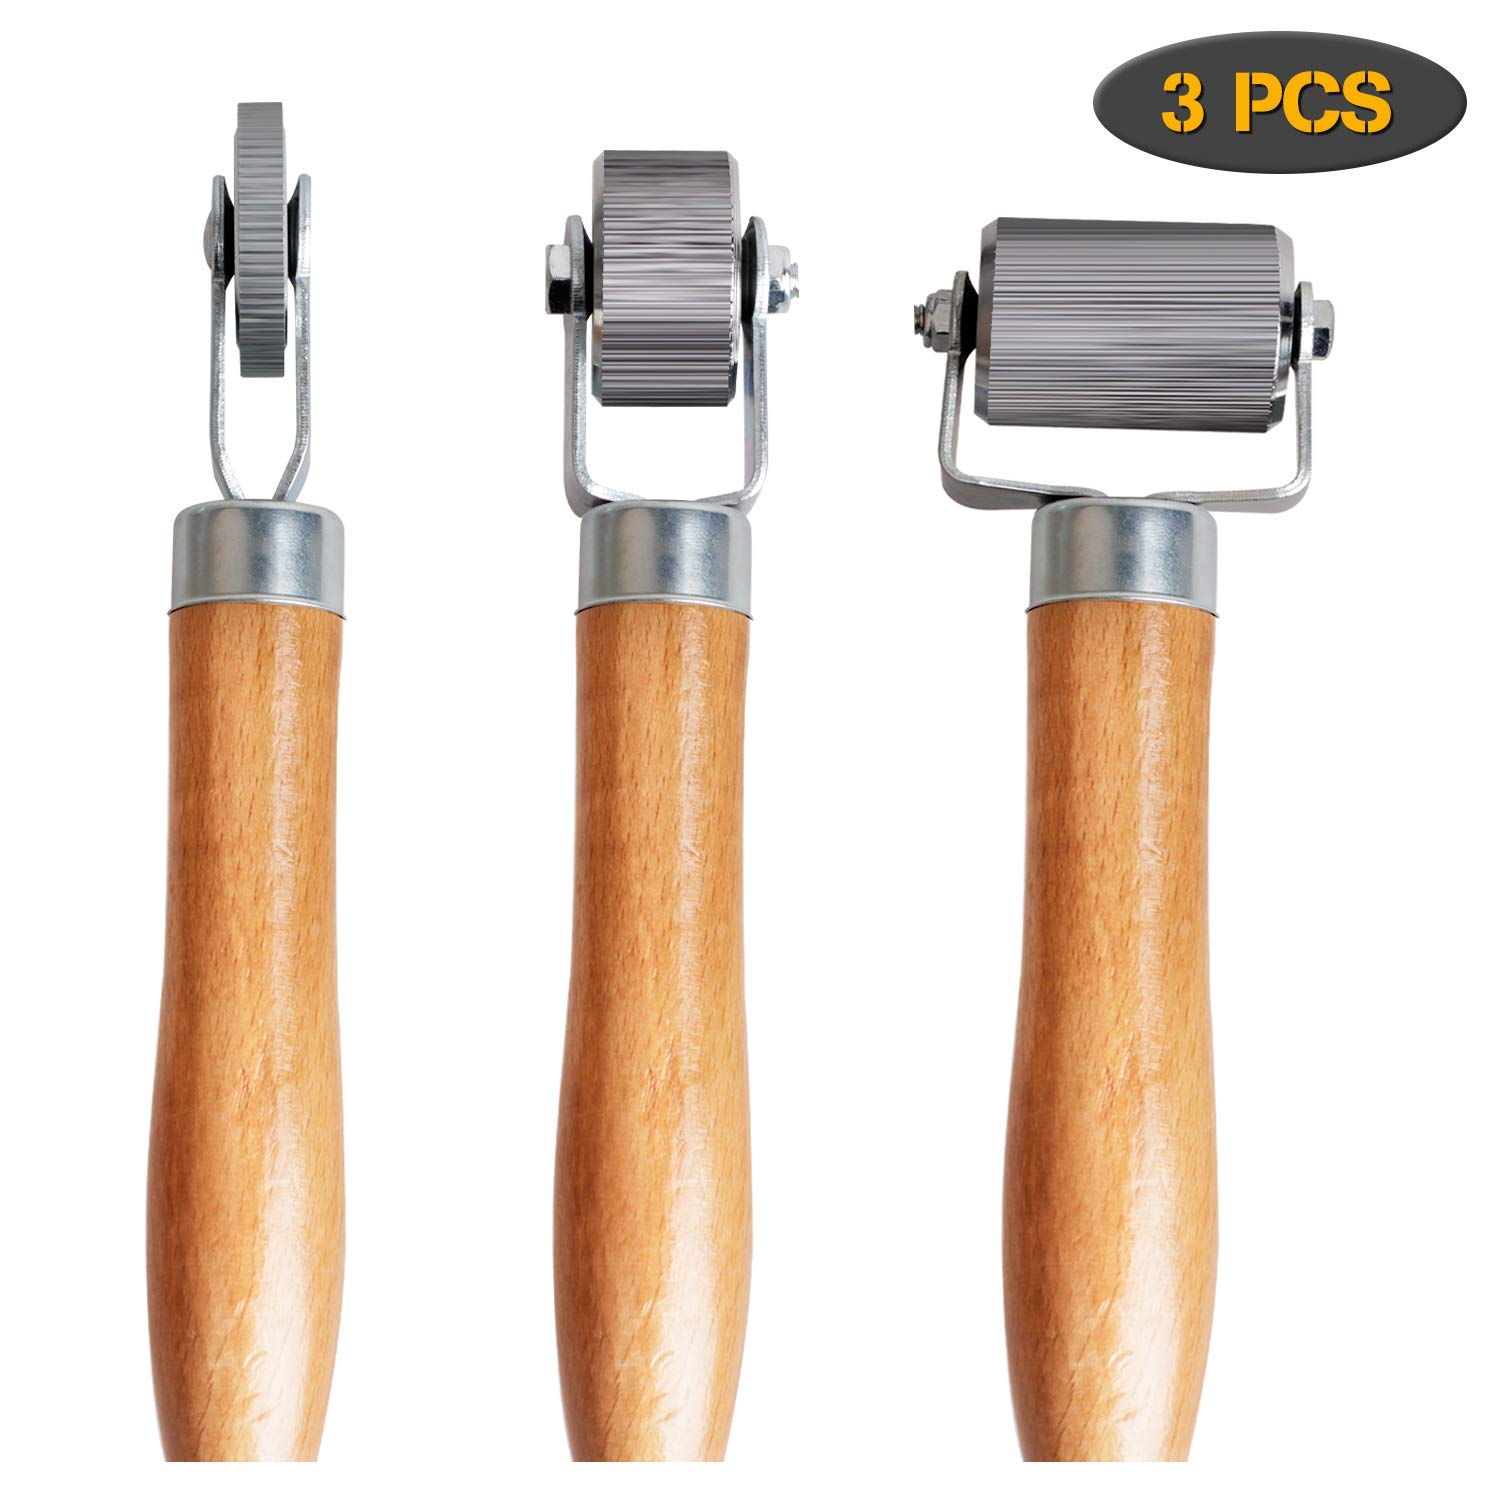 Car Sound Deadener Hand Roller Sound Noise Proof Insulation Tool 5PCS For Auto Noise Roller Car Sound Deadening Application Installation Tool Rolling Wheel Interior Accessories with Wood Handle